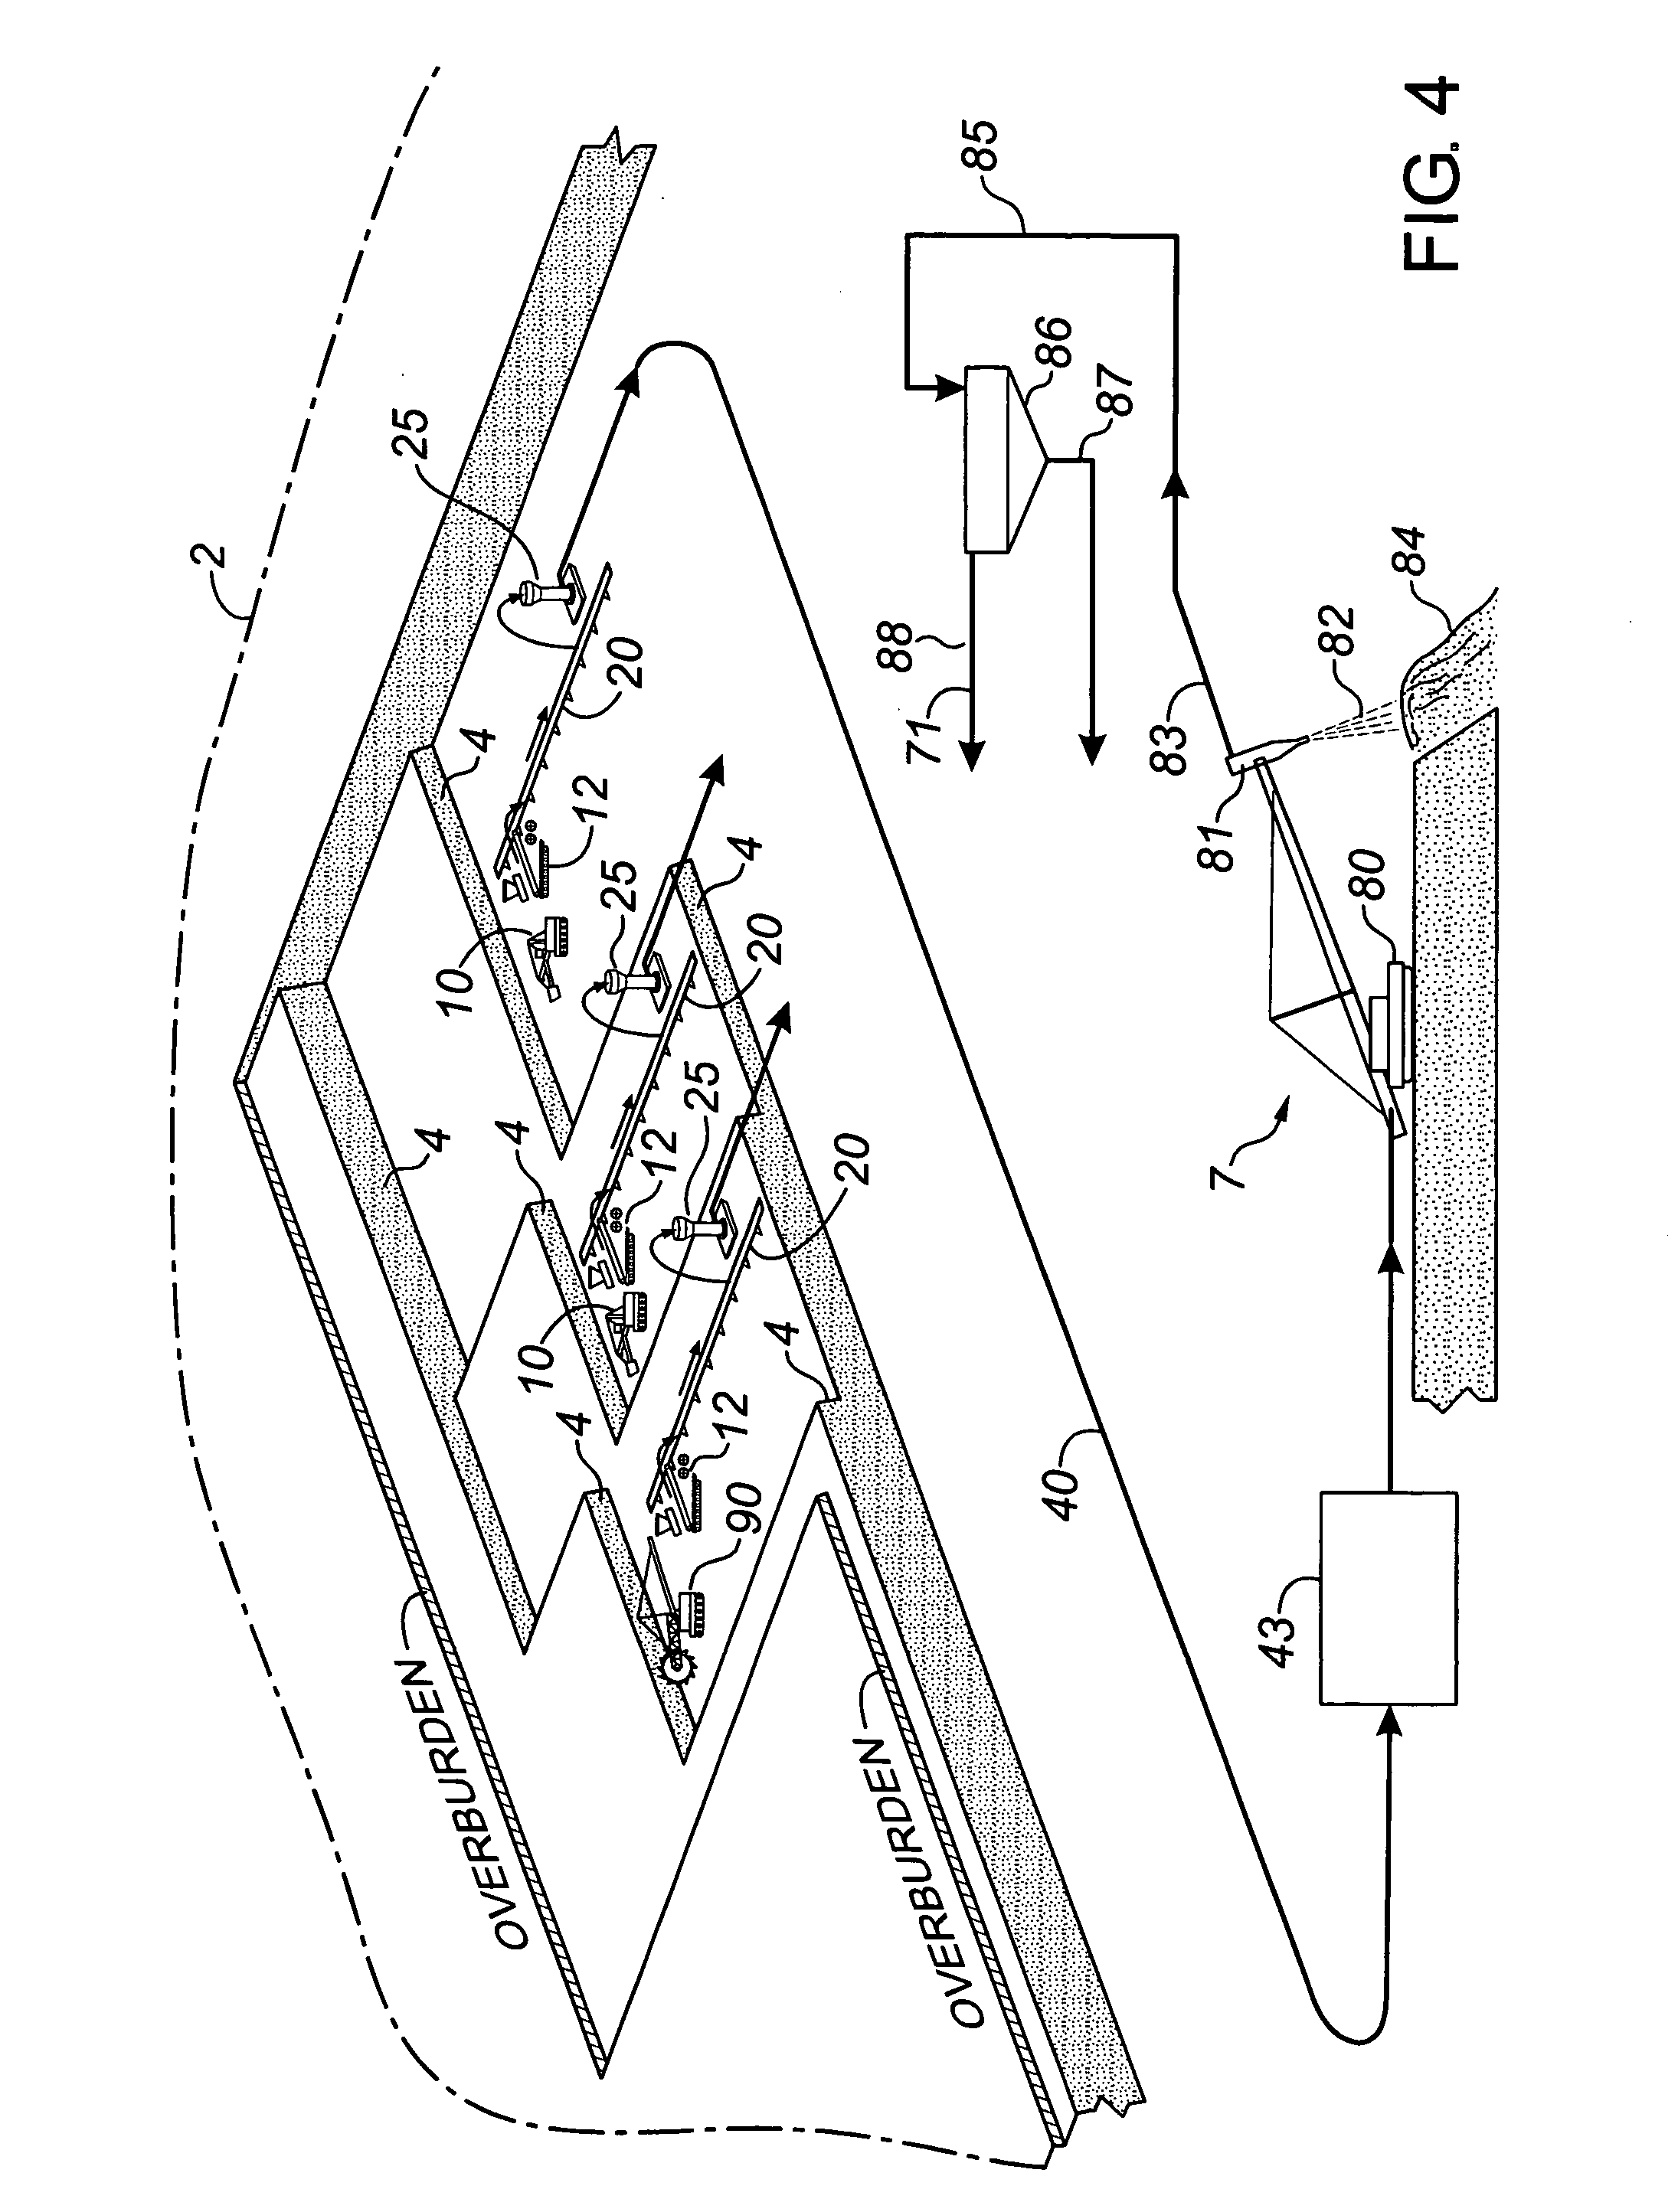 patent us20050134102 mine site oil sands processing patents Oil Water Seperator patent drawing